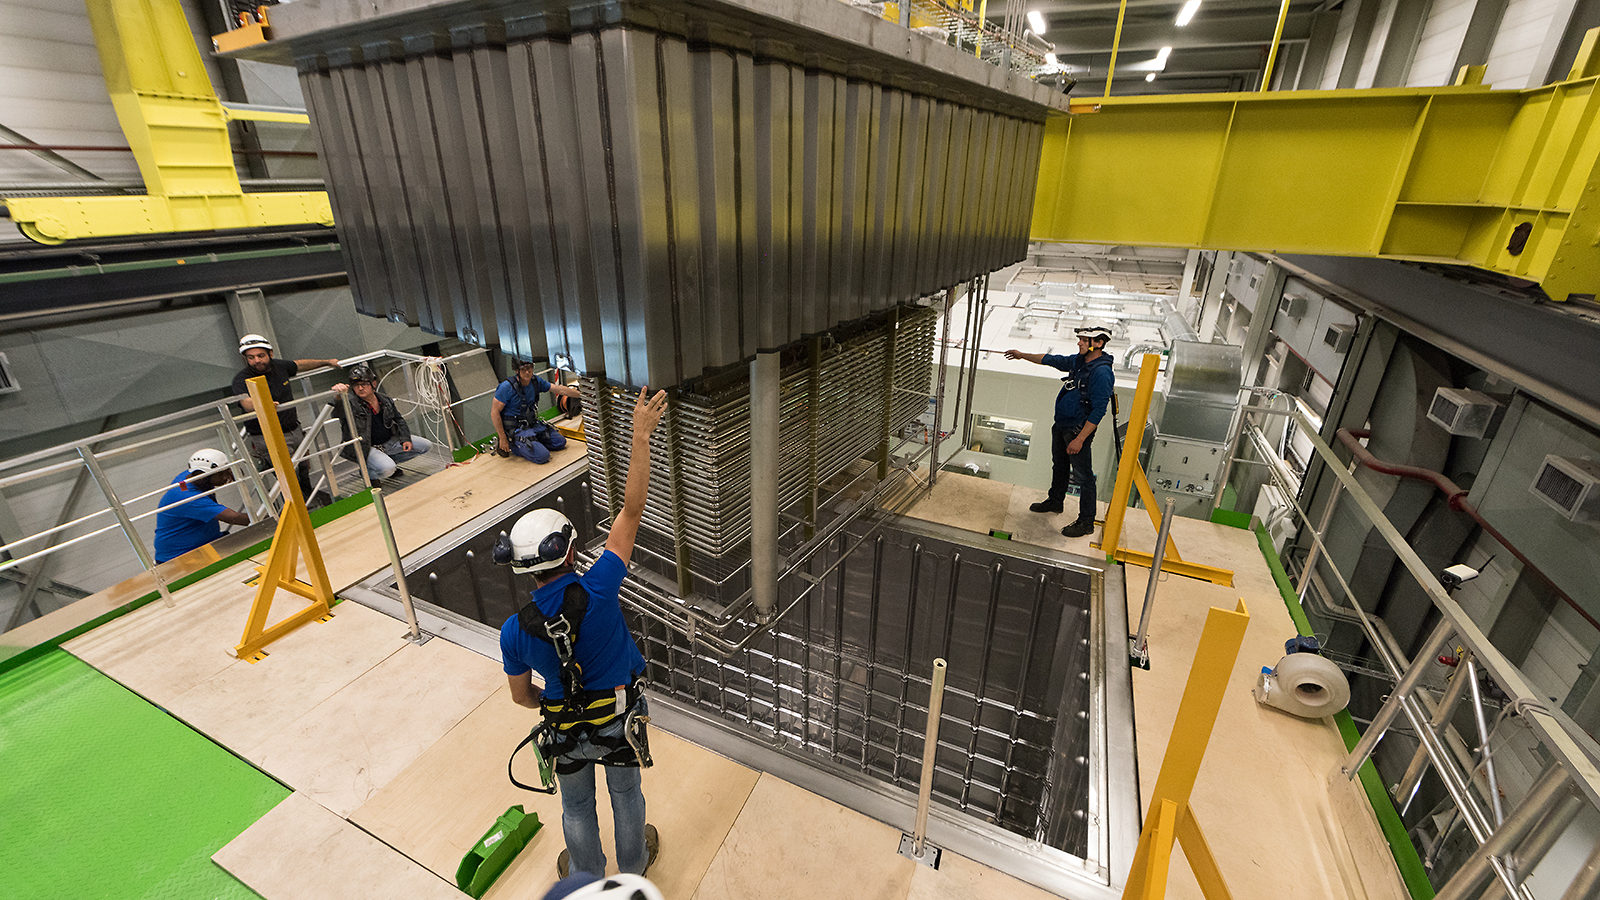 People in hard hats install the 311 detector